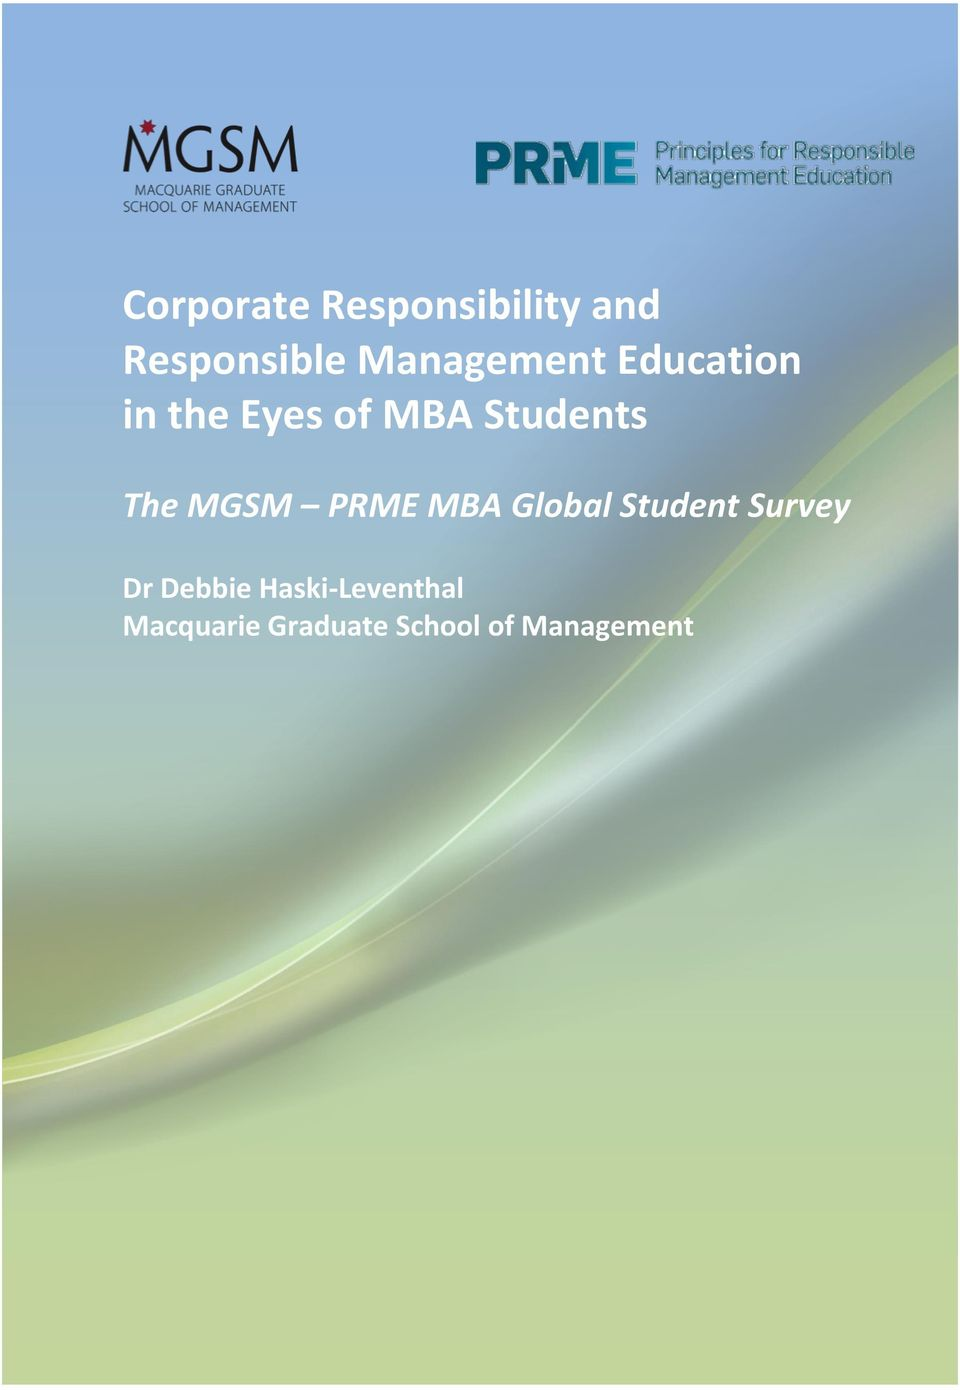 The MGSM PRME MBA Global Student Survey Dr